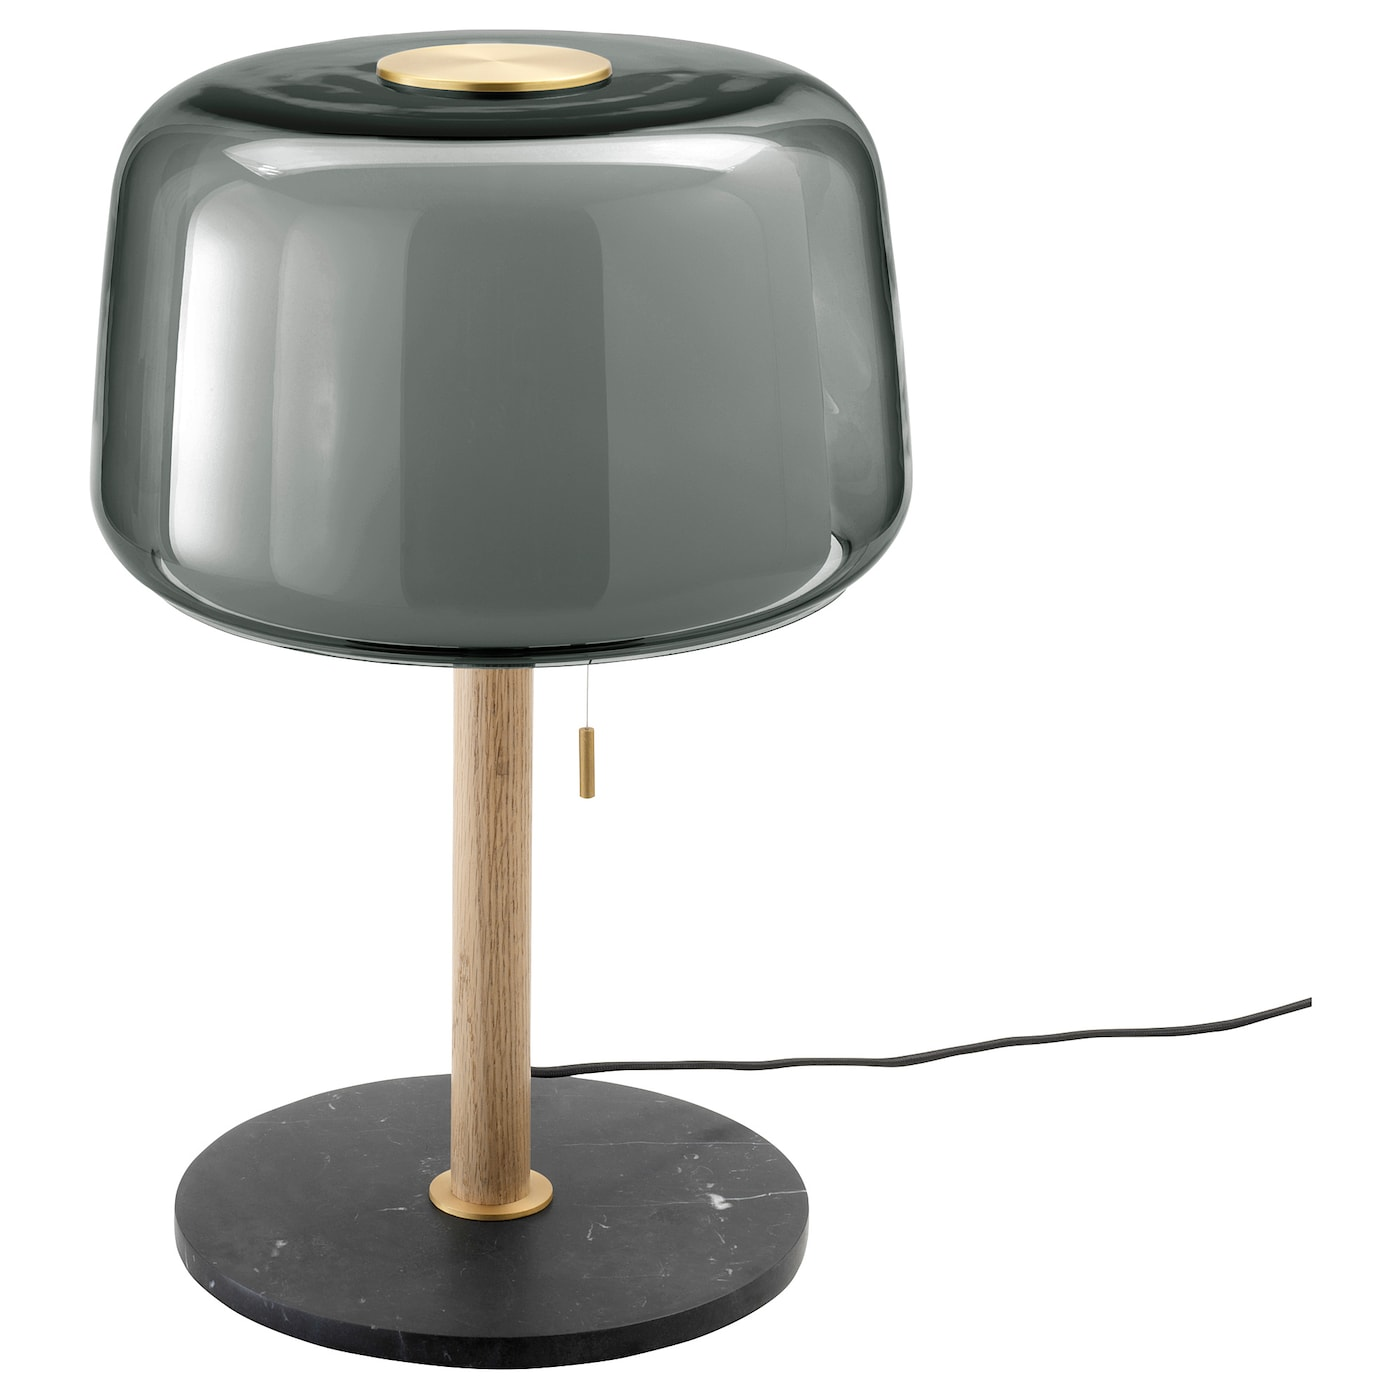 Ikea Evedal Table Lamp The Stands Le Thanks To Heavy Base In Marble